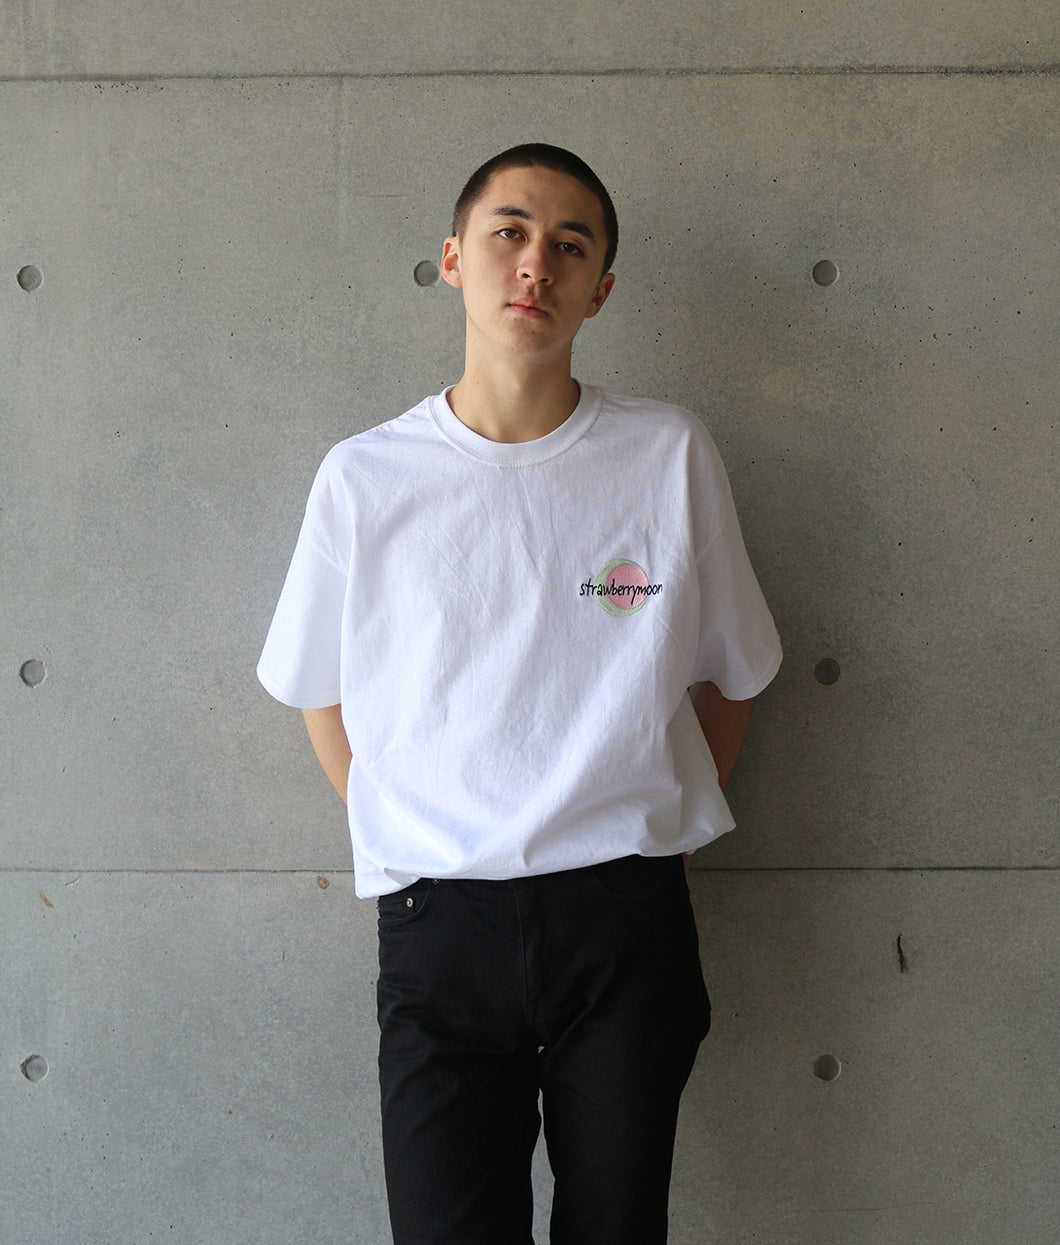 〈GLANCE〉STRABERRY MOON T-SHIRT/ストロベリームーンTシャツ(WHITE)